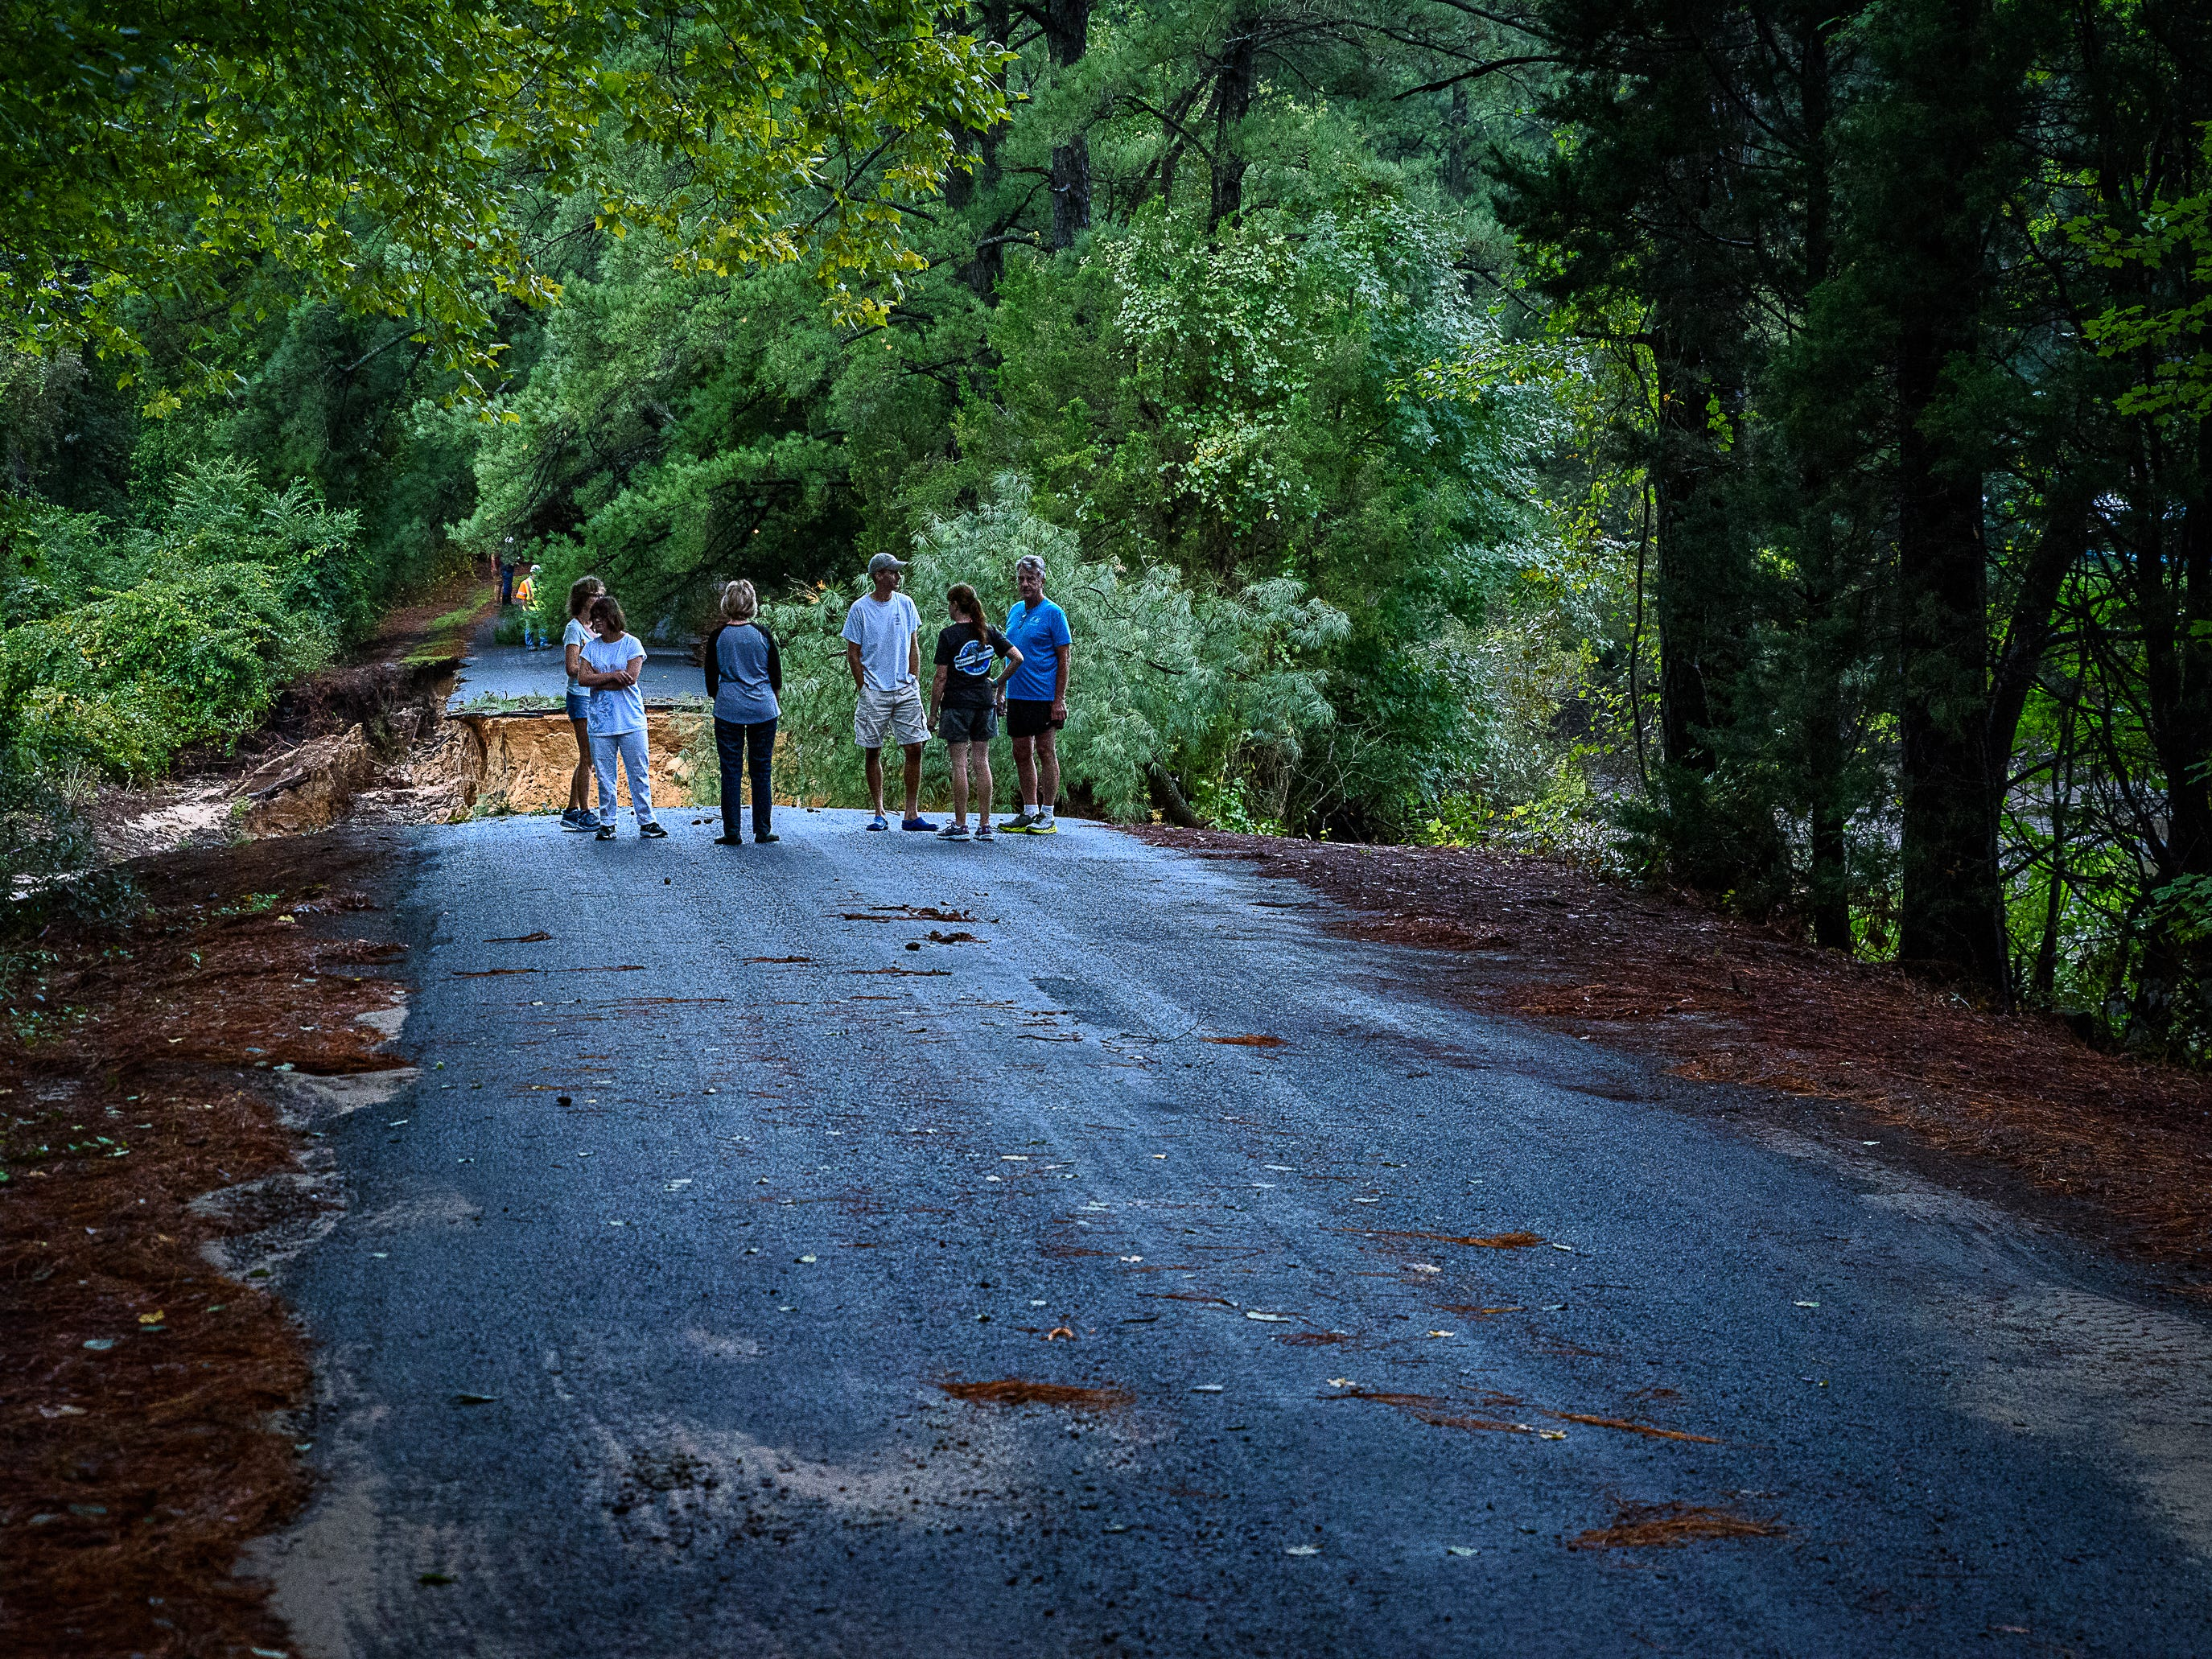 Residents of  Hillsborough neighborhood in Belle Haven in Accomack County look at the damage caused by the rain to the road leading into their area on Monday, Sept. 10.